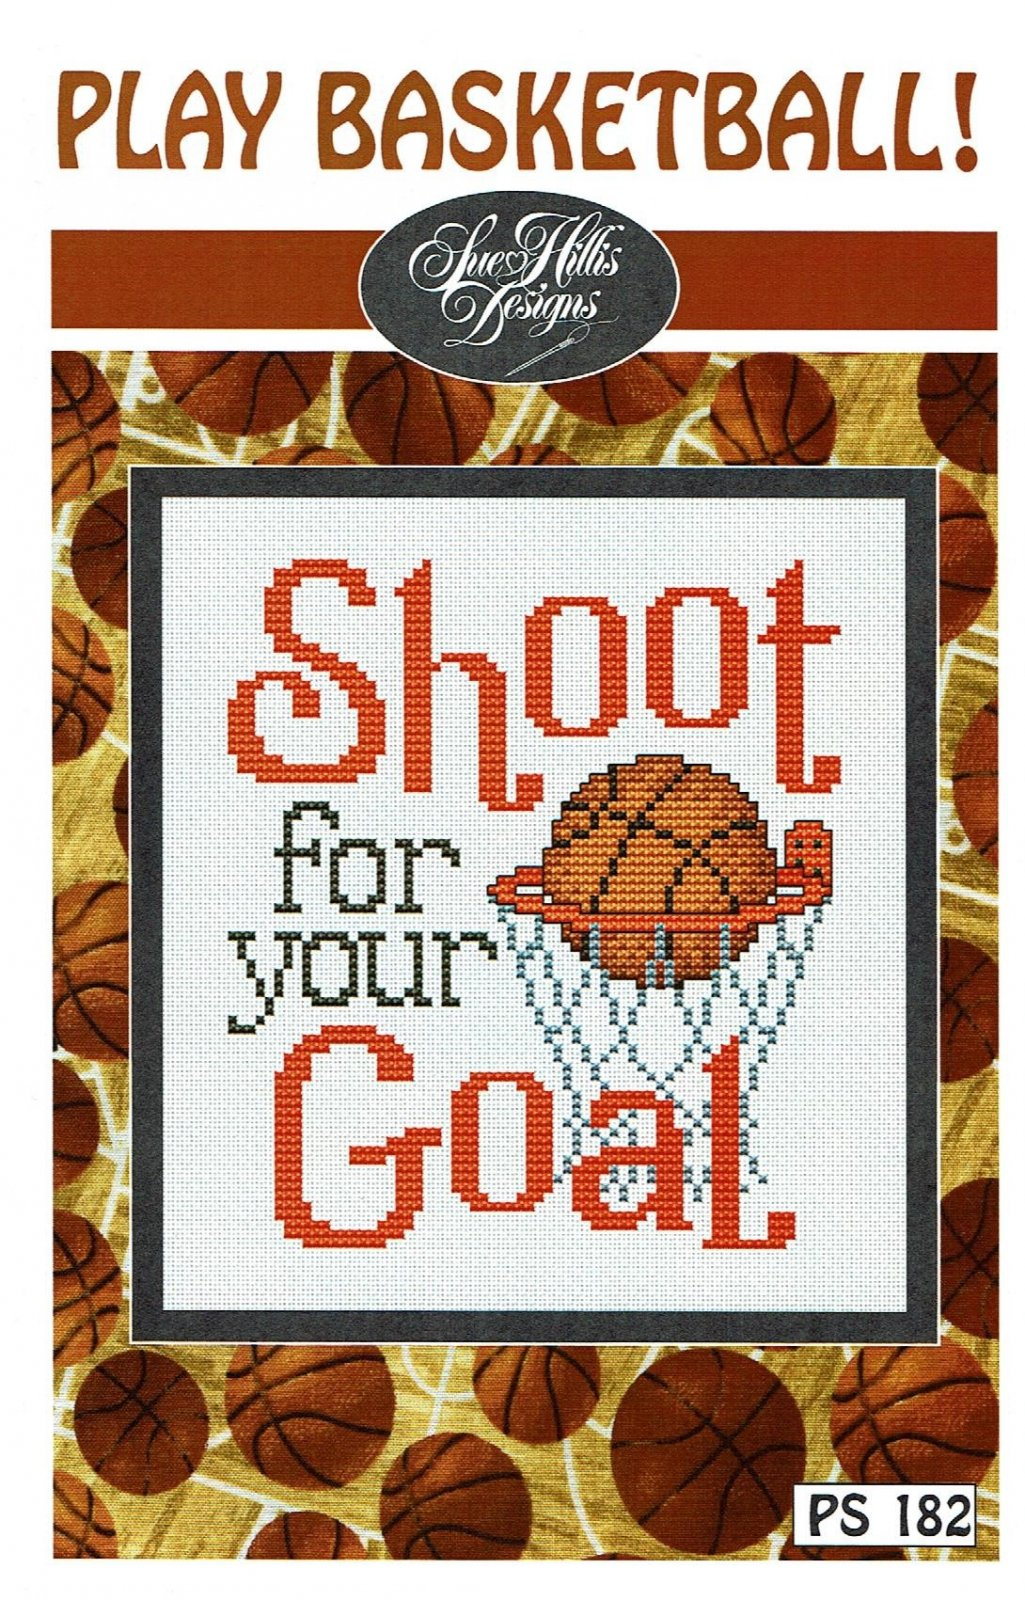 -10- 317 Play Basketball by Sue Hillis